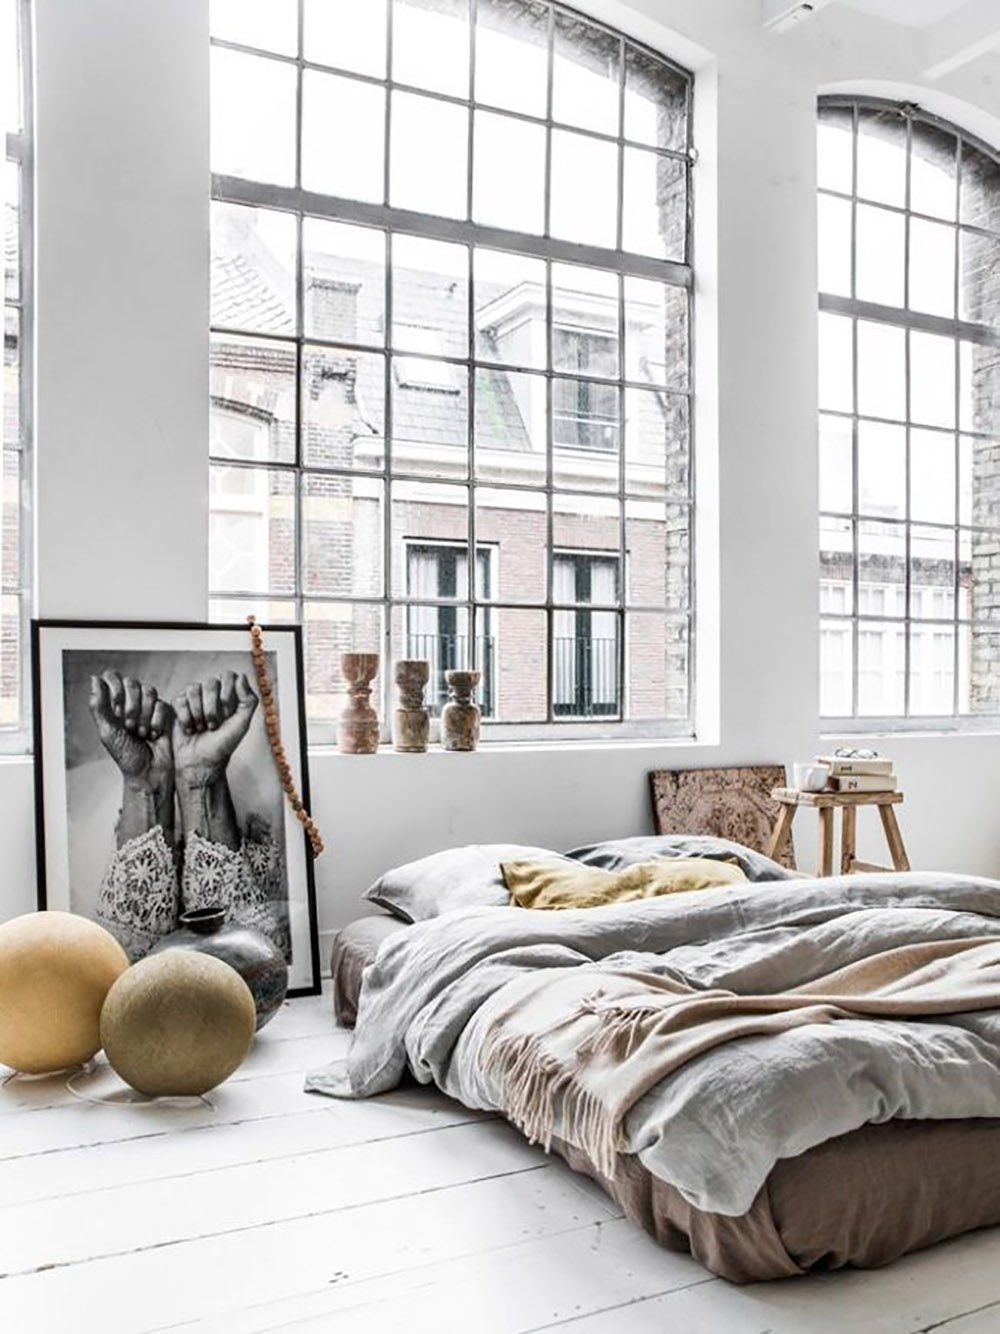 the best linen bedding - house of baltic linen the house of baltic linen is lithuanian family ownedcompany based in victoria australia their organic linens are made in